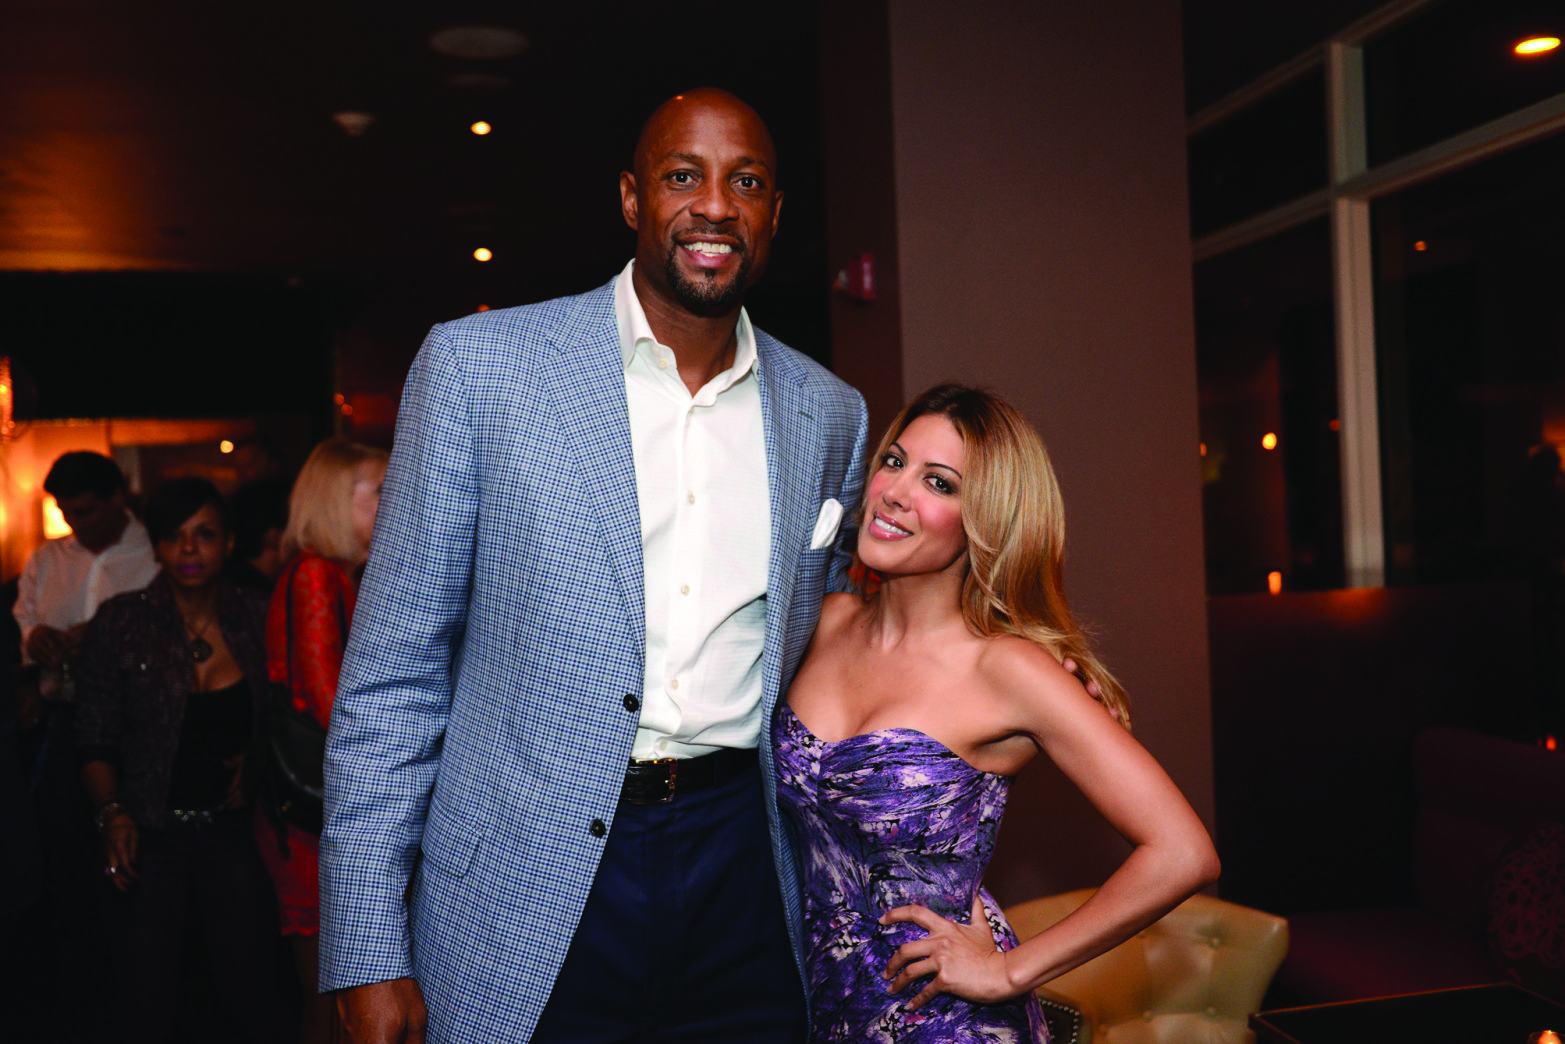 Celeb-spotting around South Florida - Alonzo Mourning, left, and Kavita Channe recently attended a VIP dinner and cocktail party at Beauty & The Feast Bar|Kitchen in The Atlantic Hotel & Spa in Fort Lauderdale.